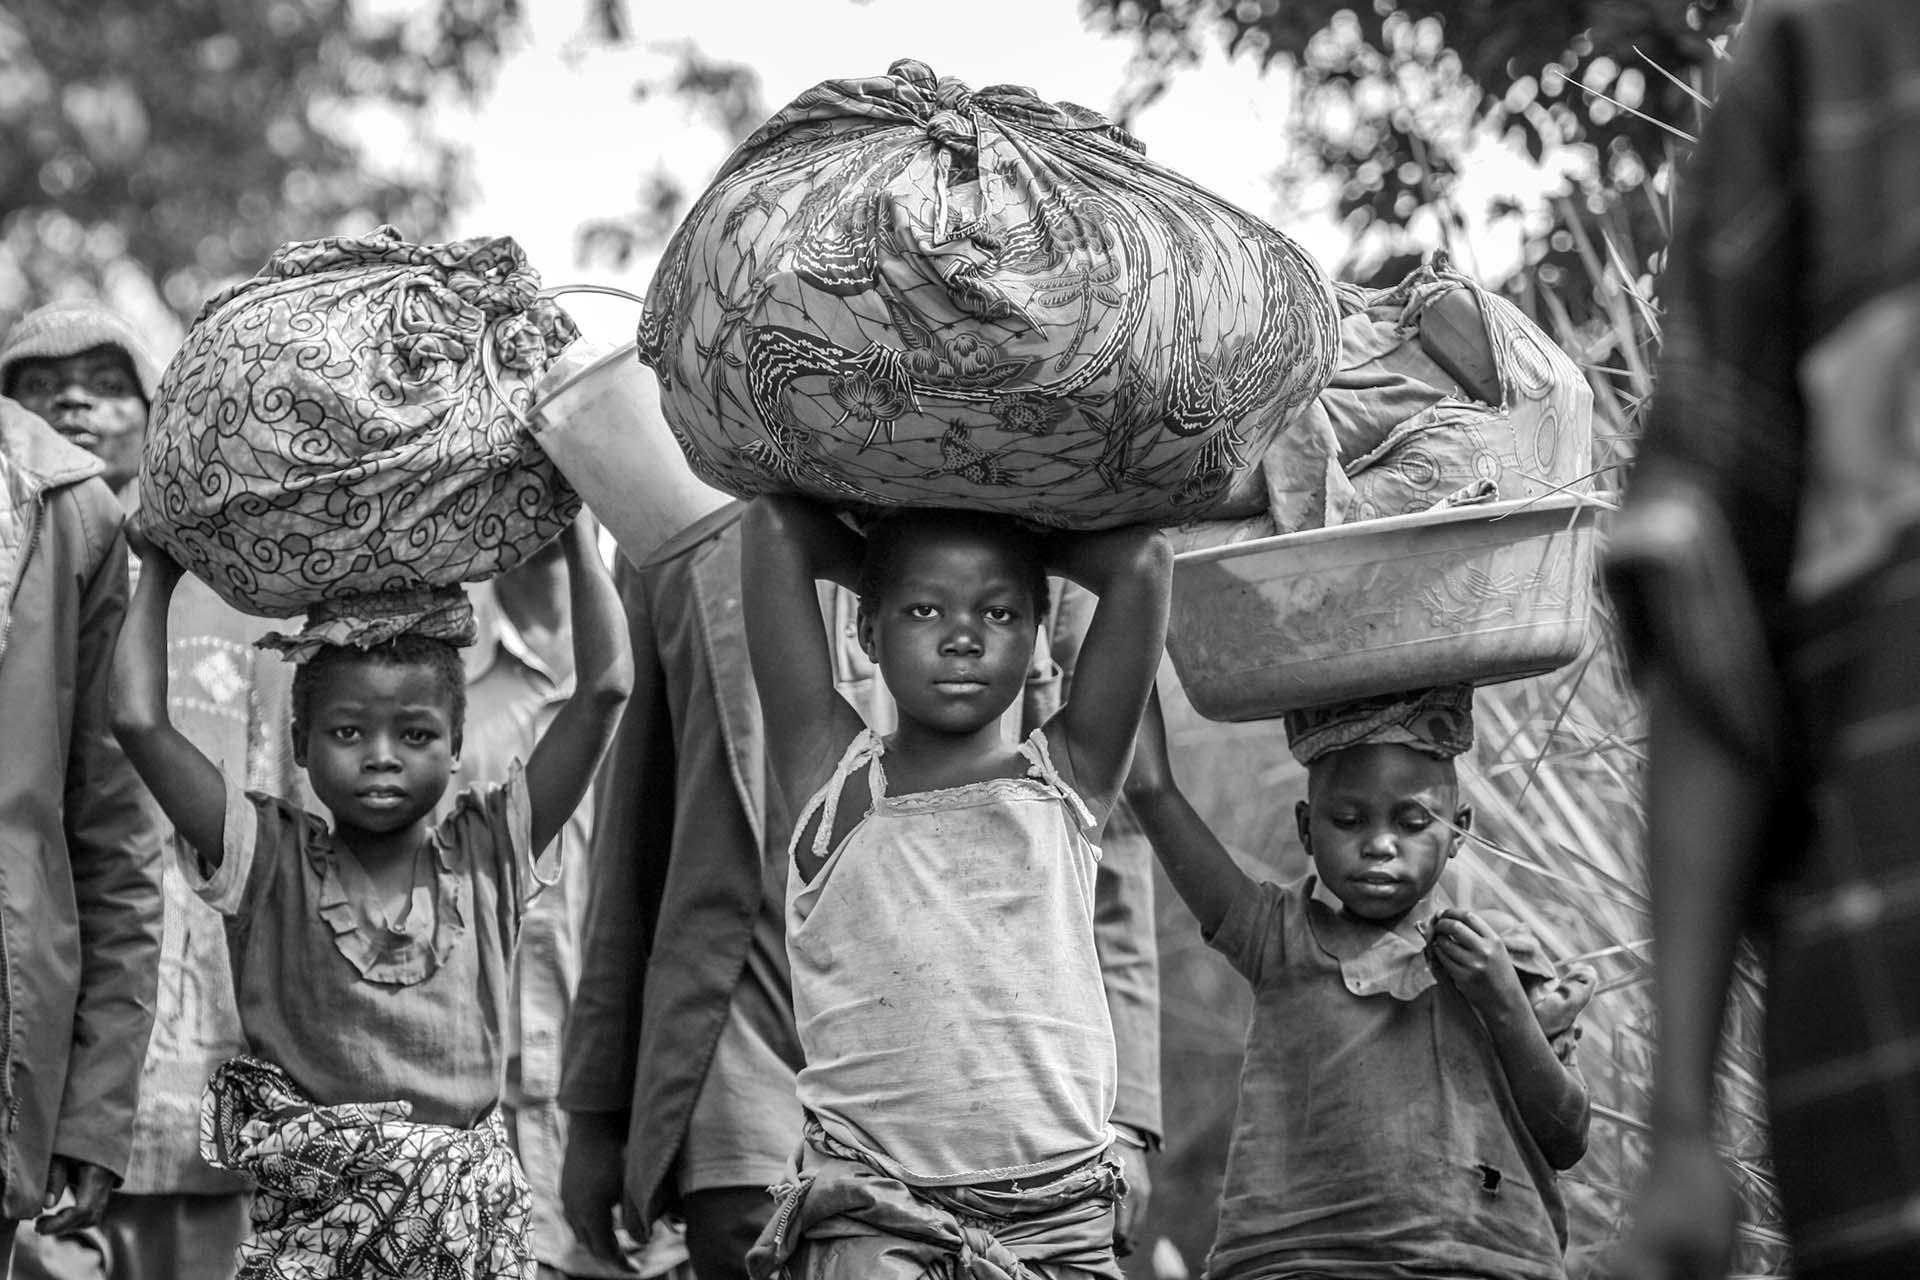 With all they can carry, Congolese, mainly women and children, make a long journey to find a safe haven near the village of Gety in Ituri region.